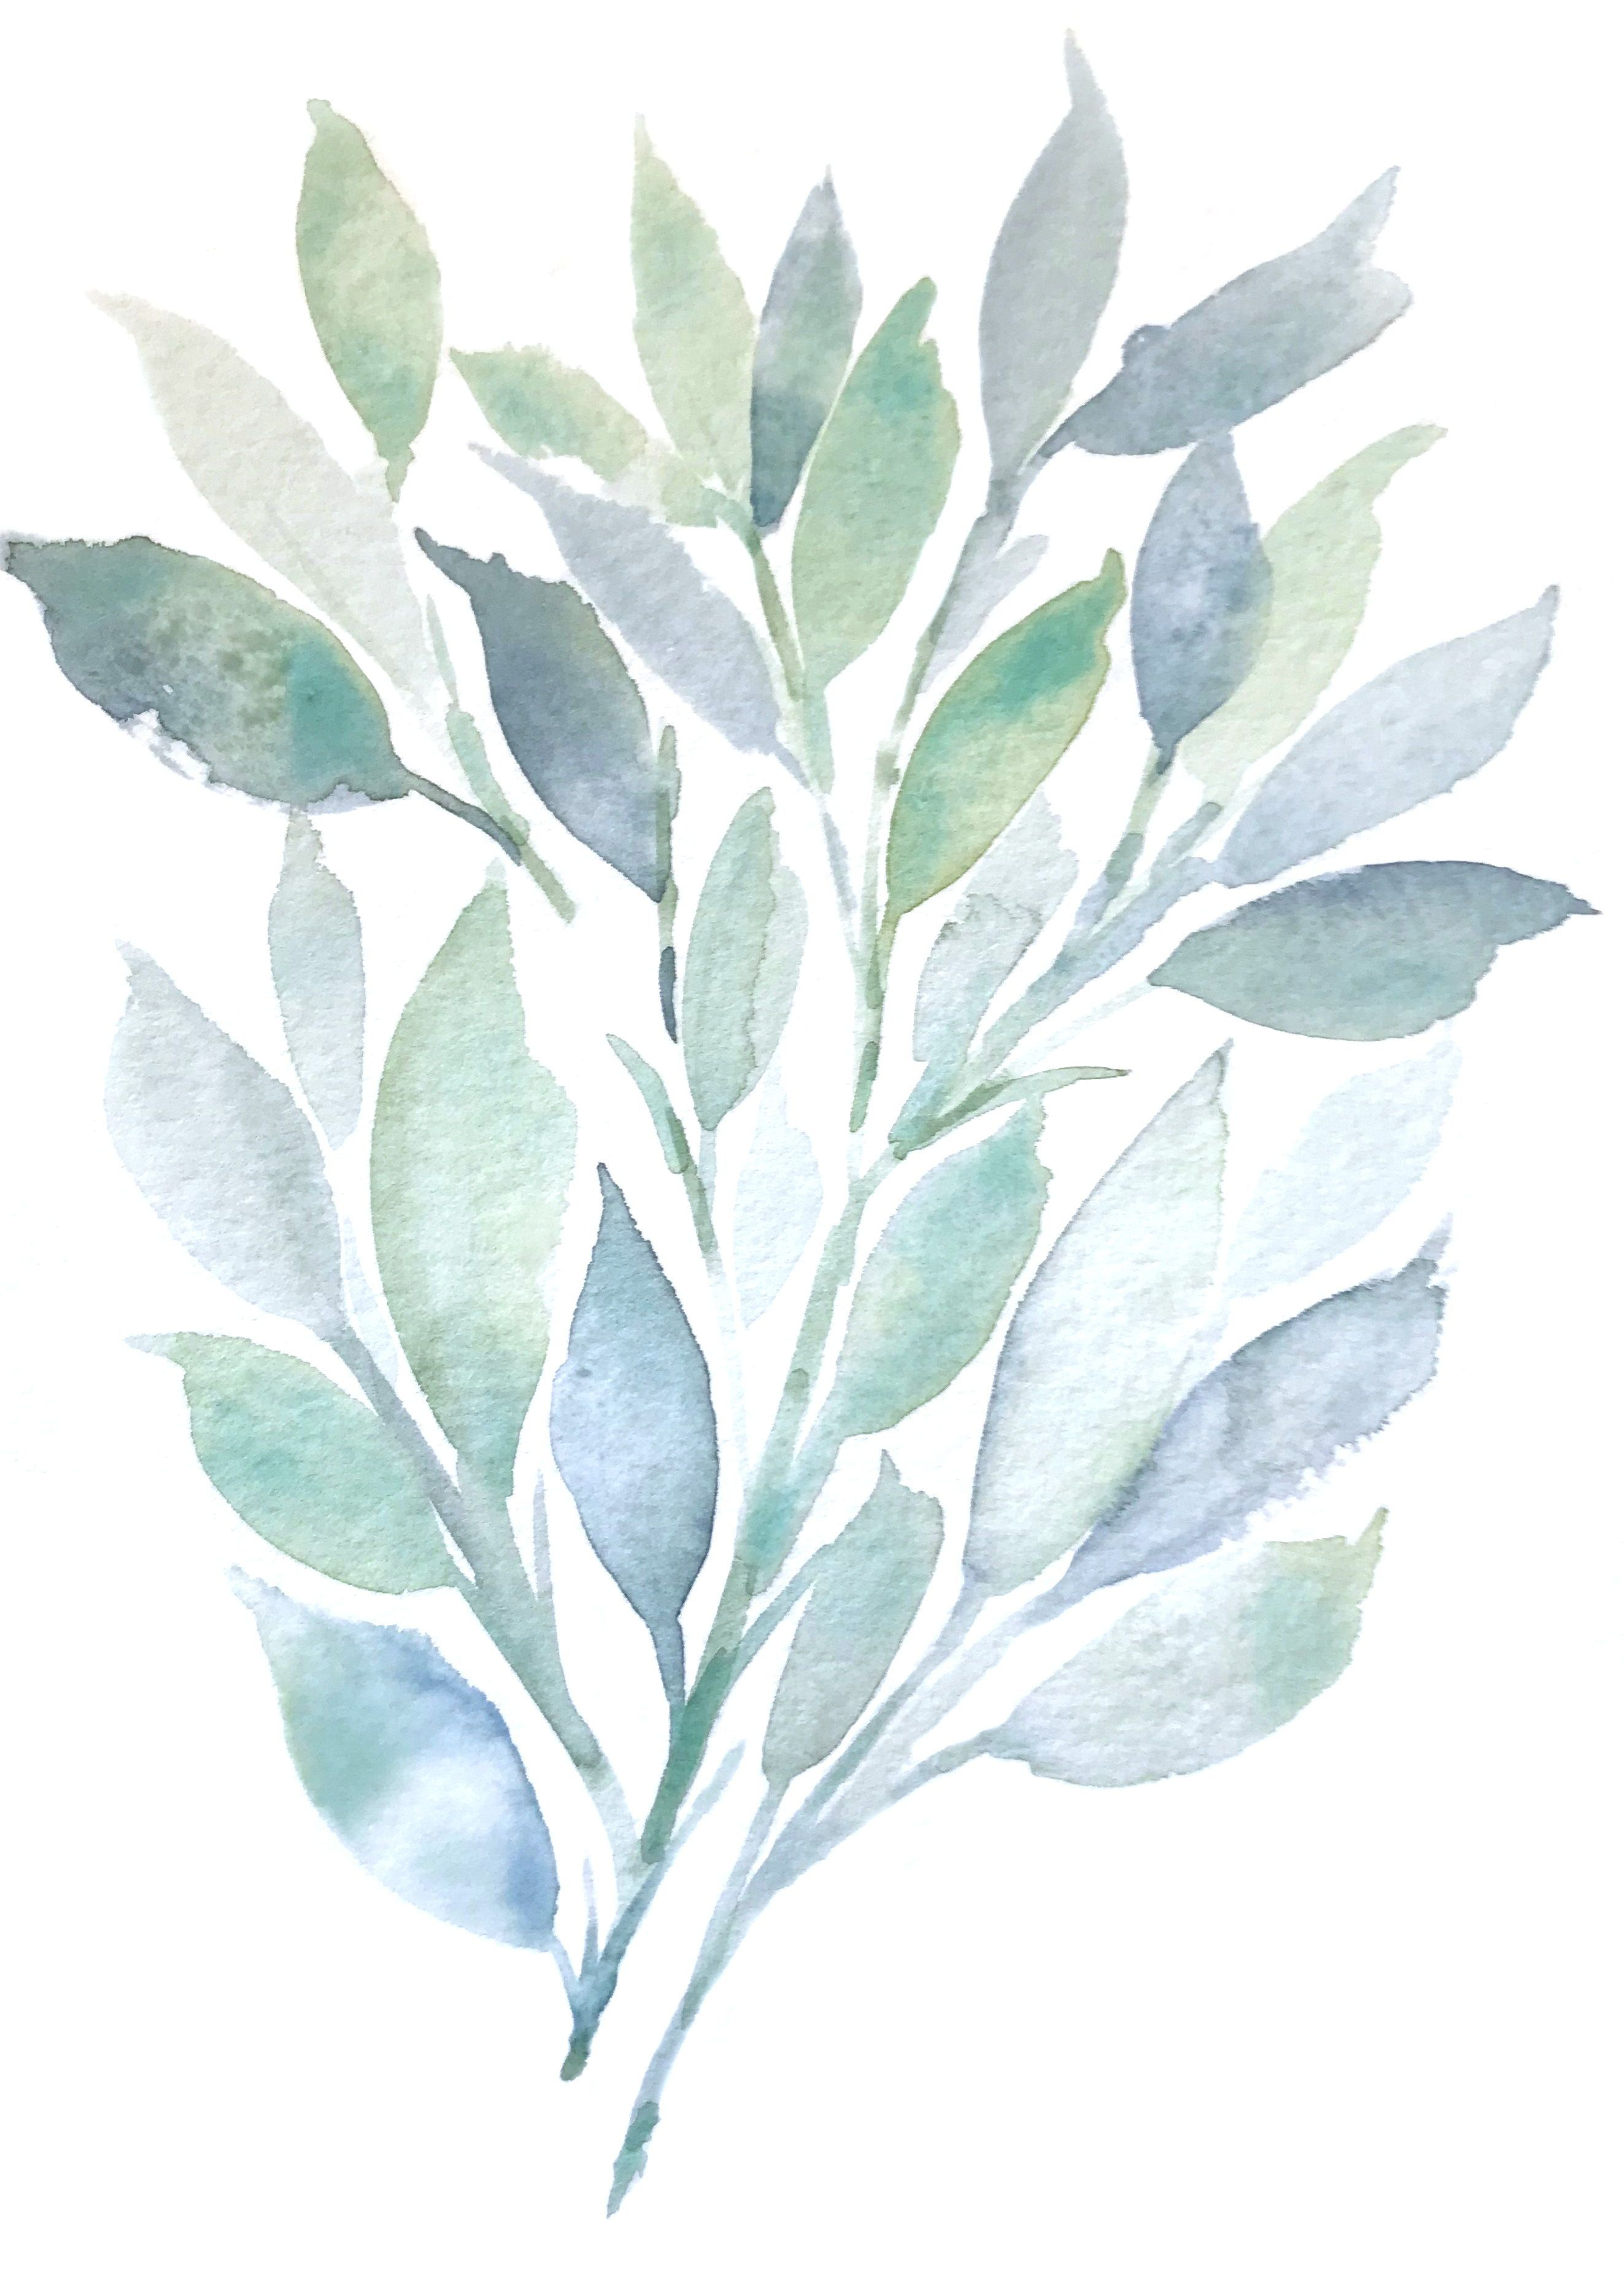 Spring Leaves Asara Design Watercolor Art Watercolour